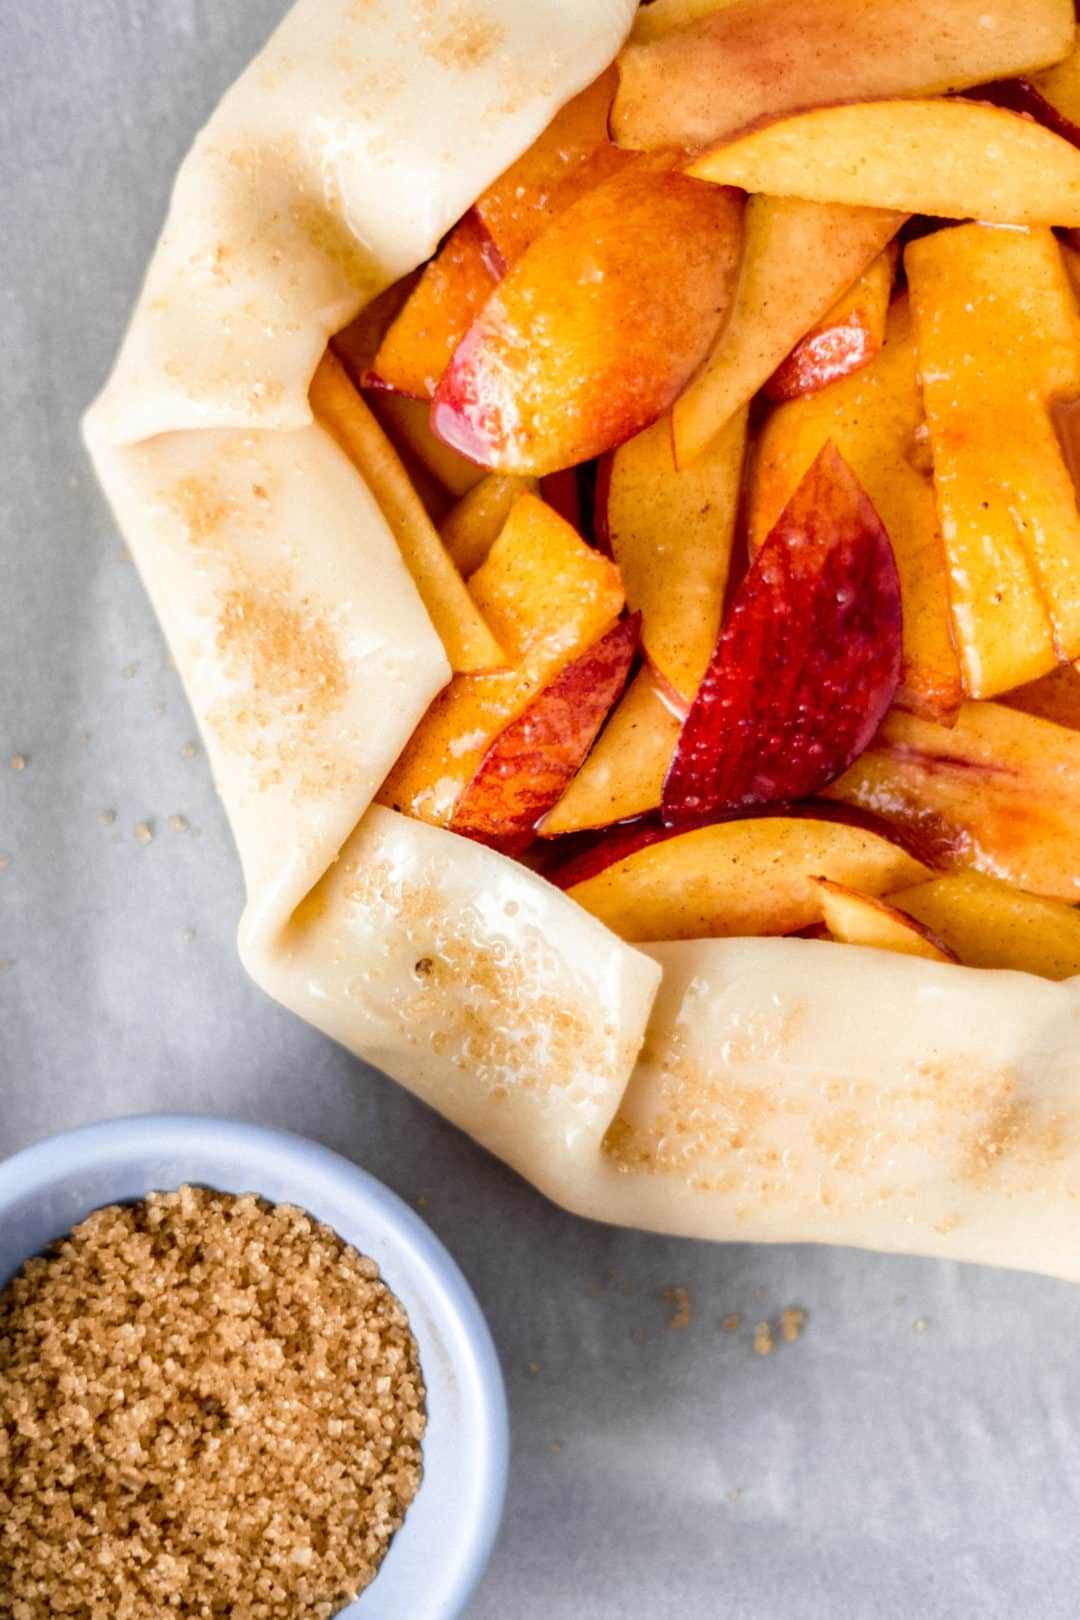 small blue bowl of raw sugar next to uncooked peach galette